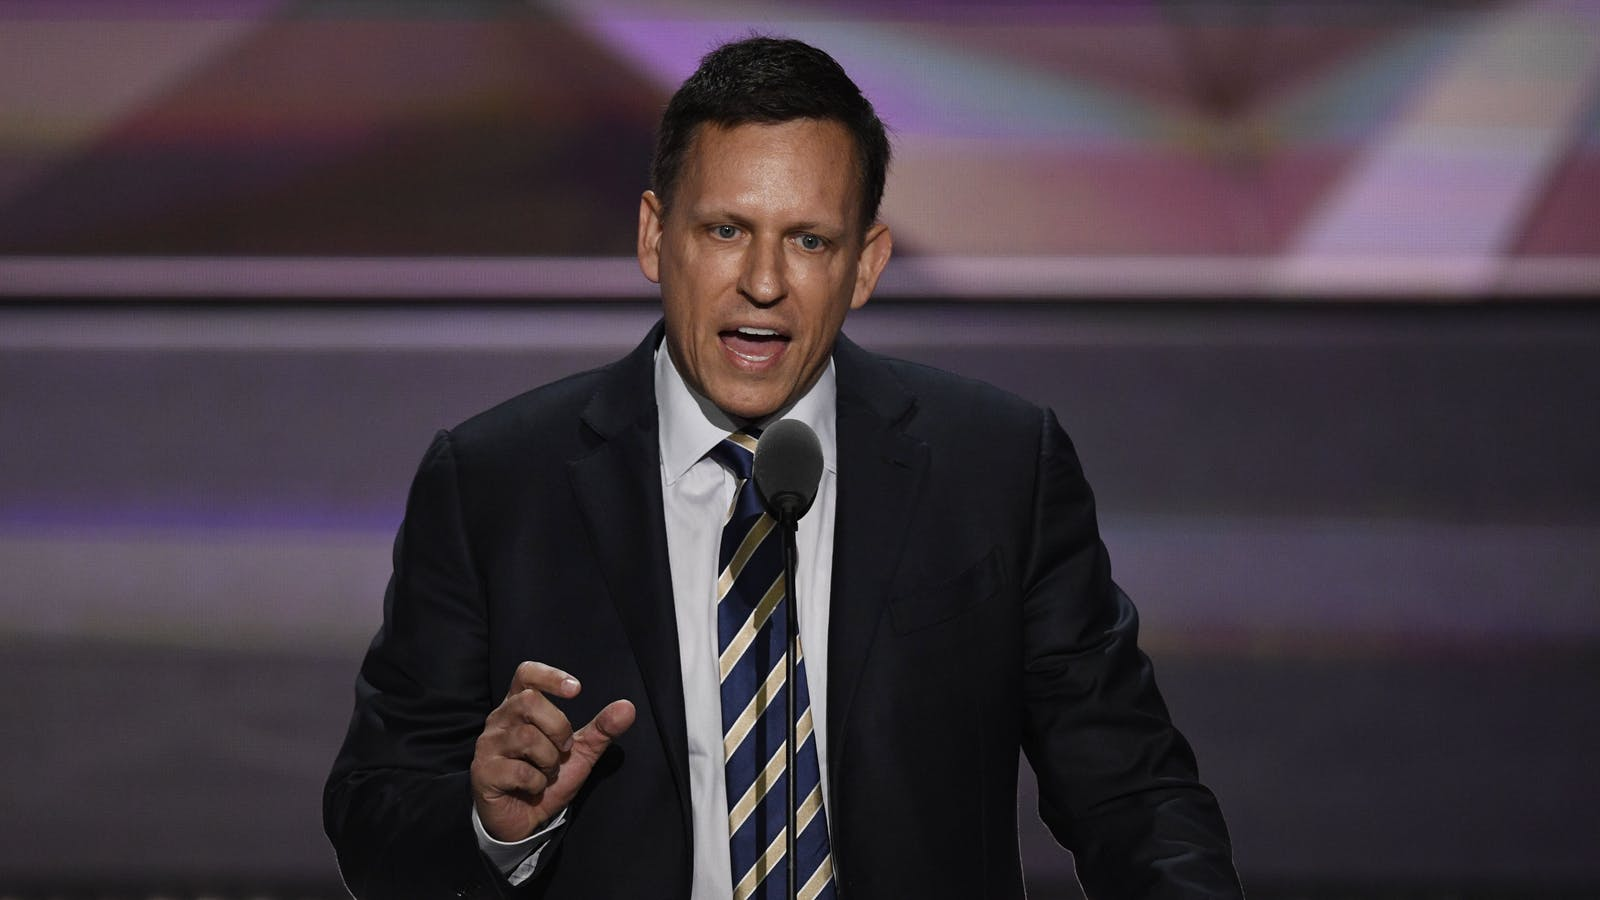 Peter Thiel speaking at the RNC. Photo by Bloomberg.